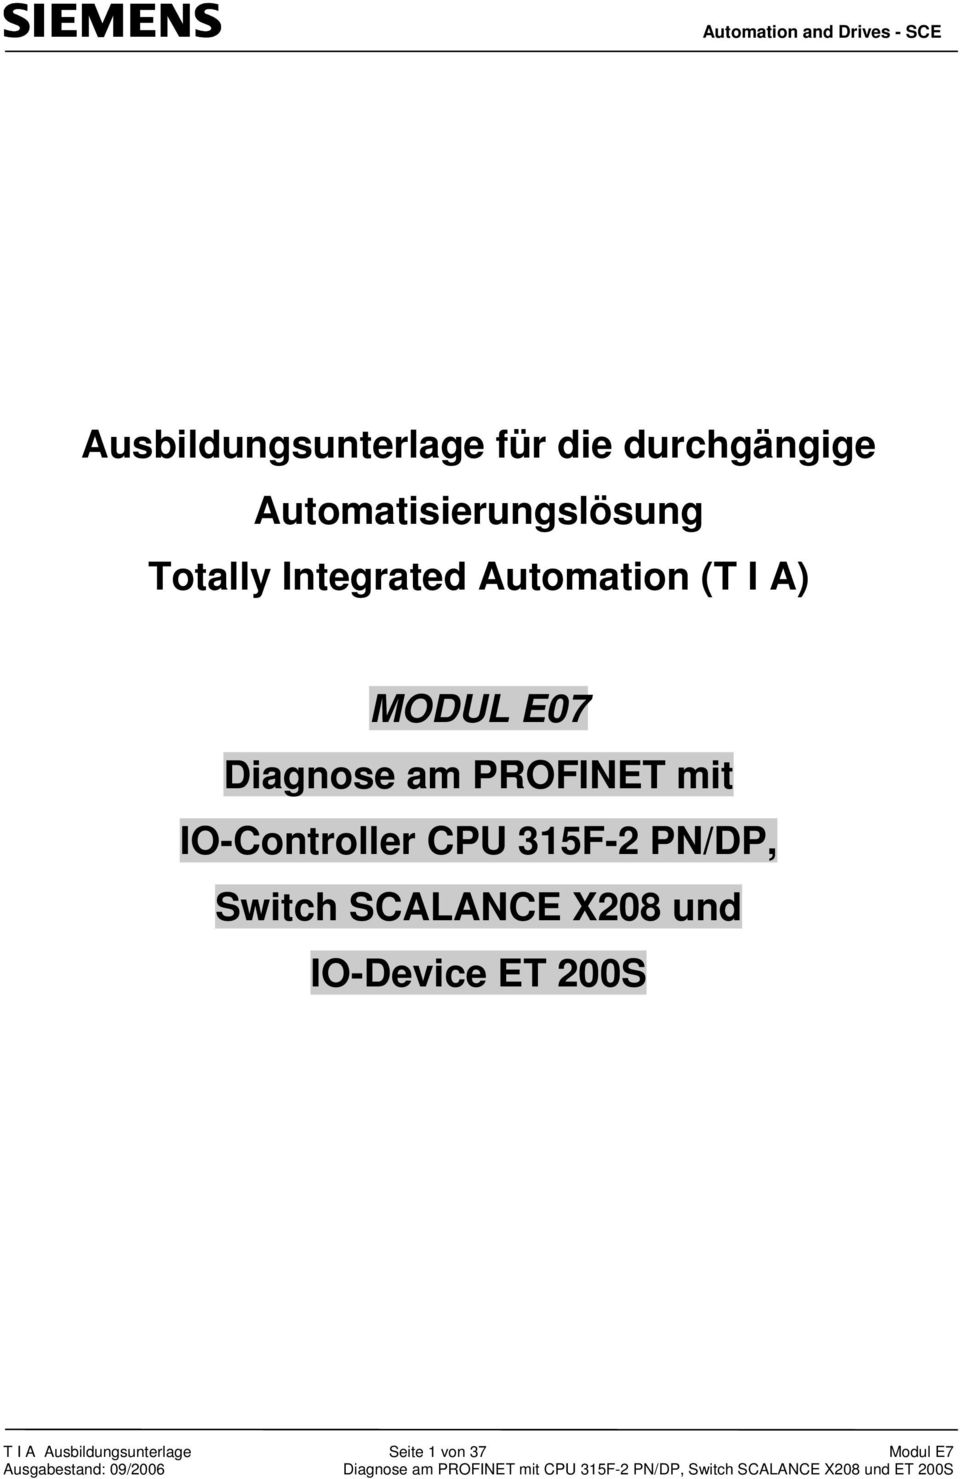 PROFINET mit IO-Controller CPU 315F-2 PN/DP, Switch SCALANCE X208